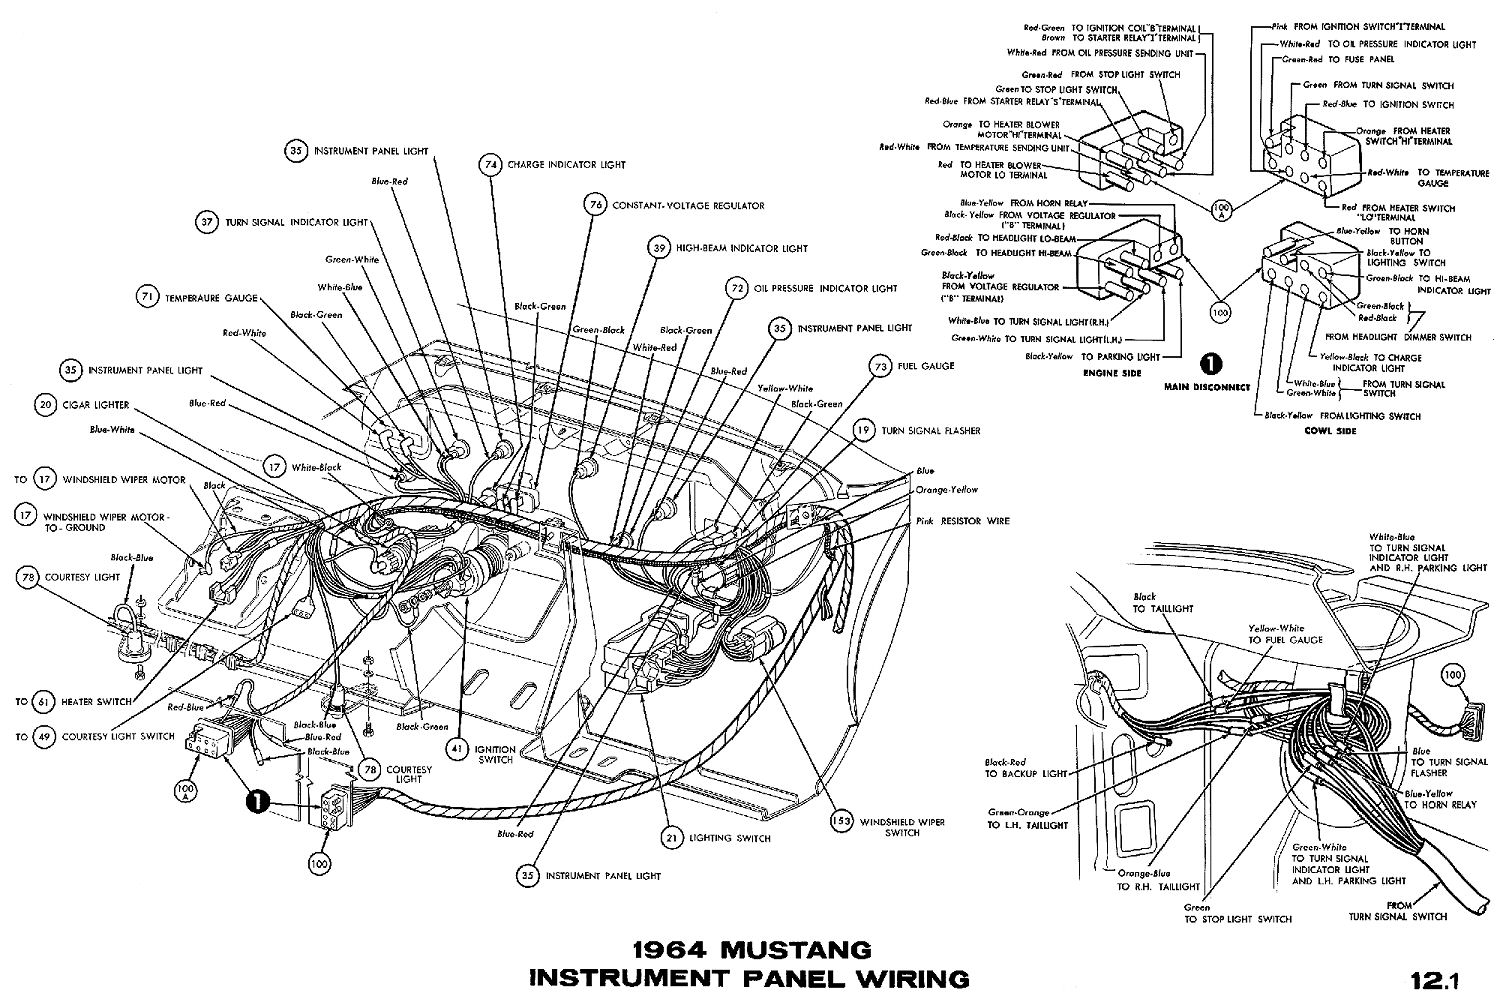 1964 Mustang Wiring Diagrams Average Joe Restoration Diagram For Gauges Instrument Cluster Connections